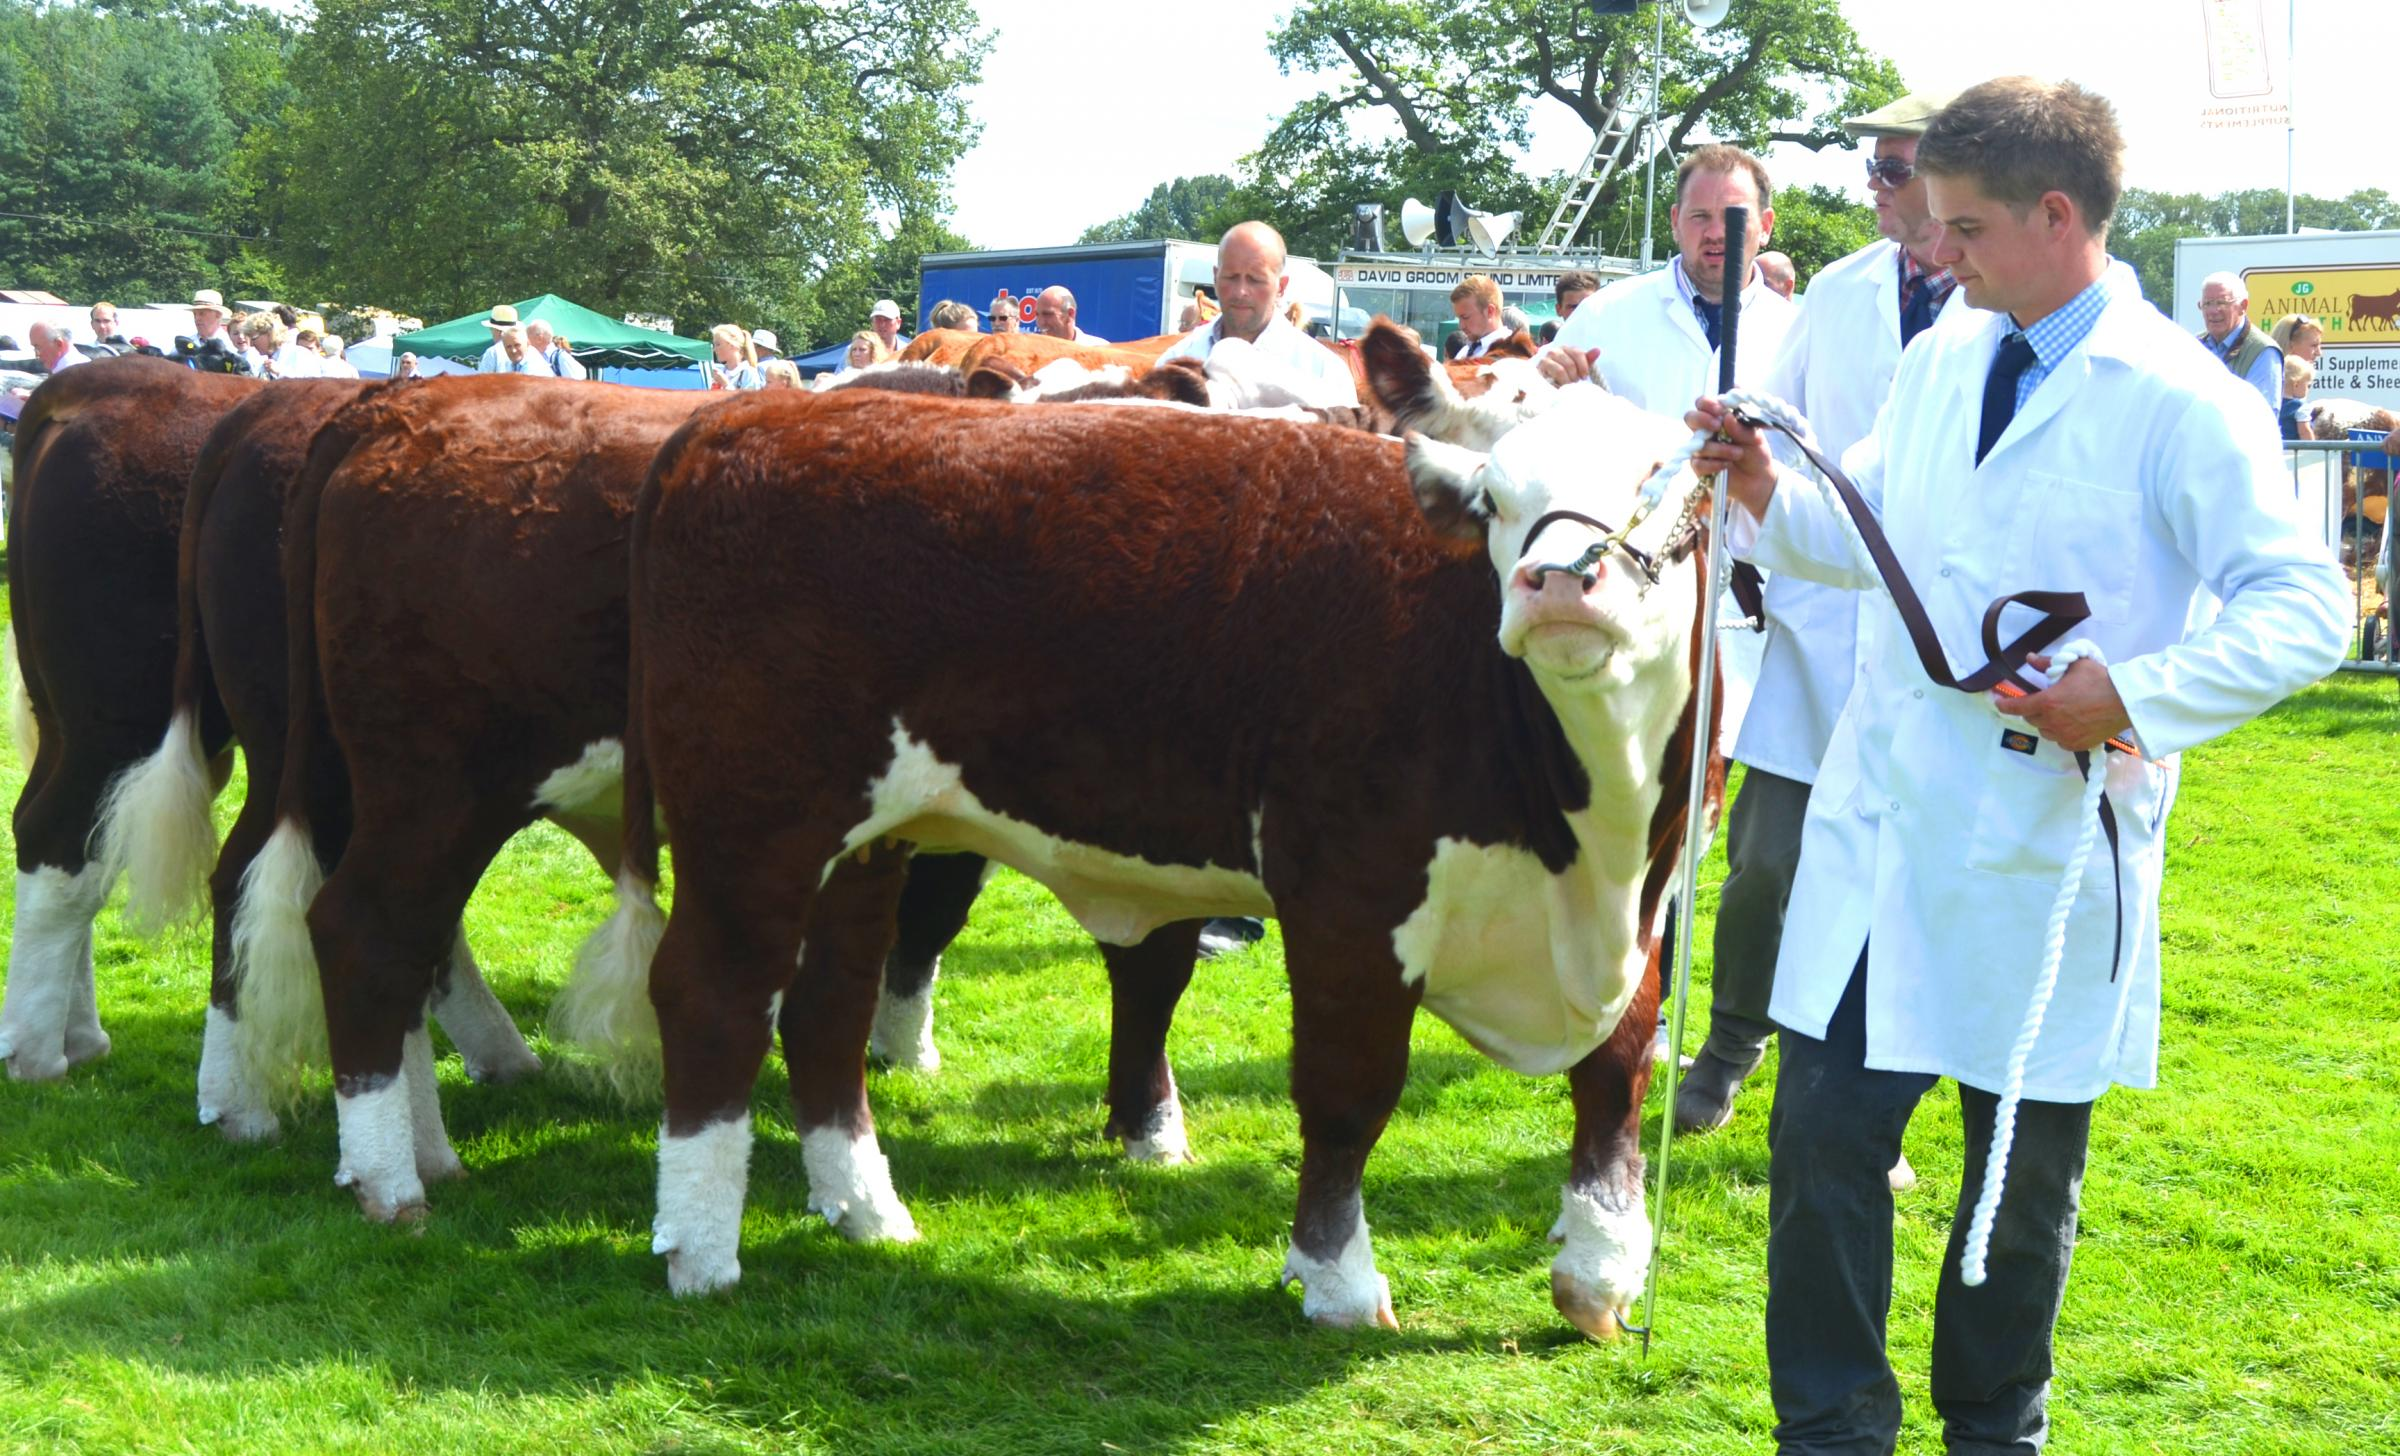 Herefords on parade at Burwarton Show. Photos: Adrian Kibbler.